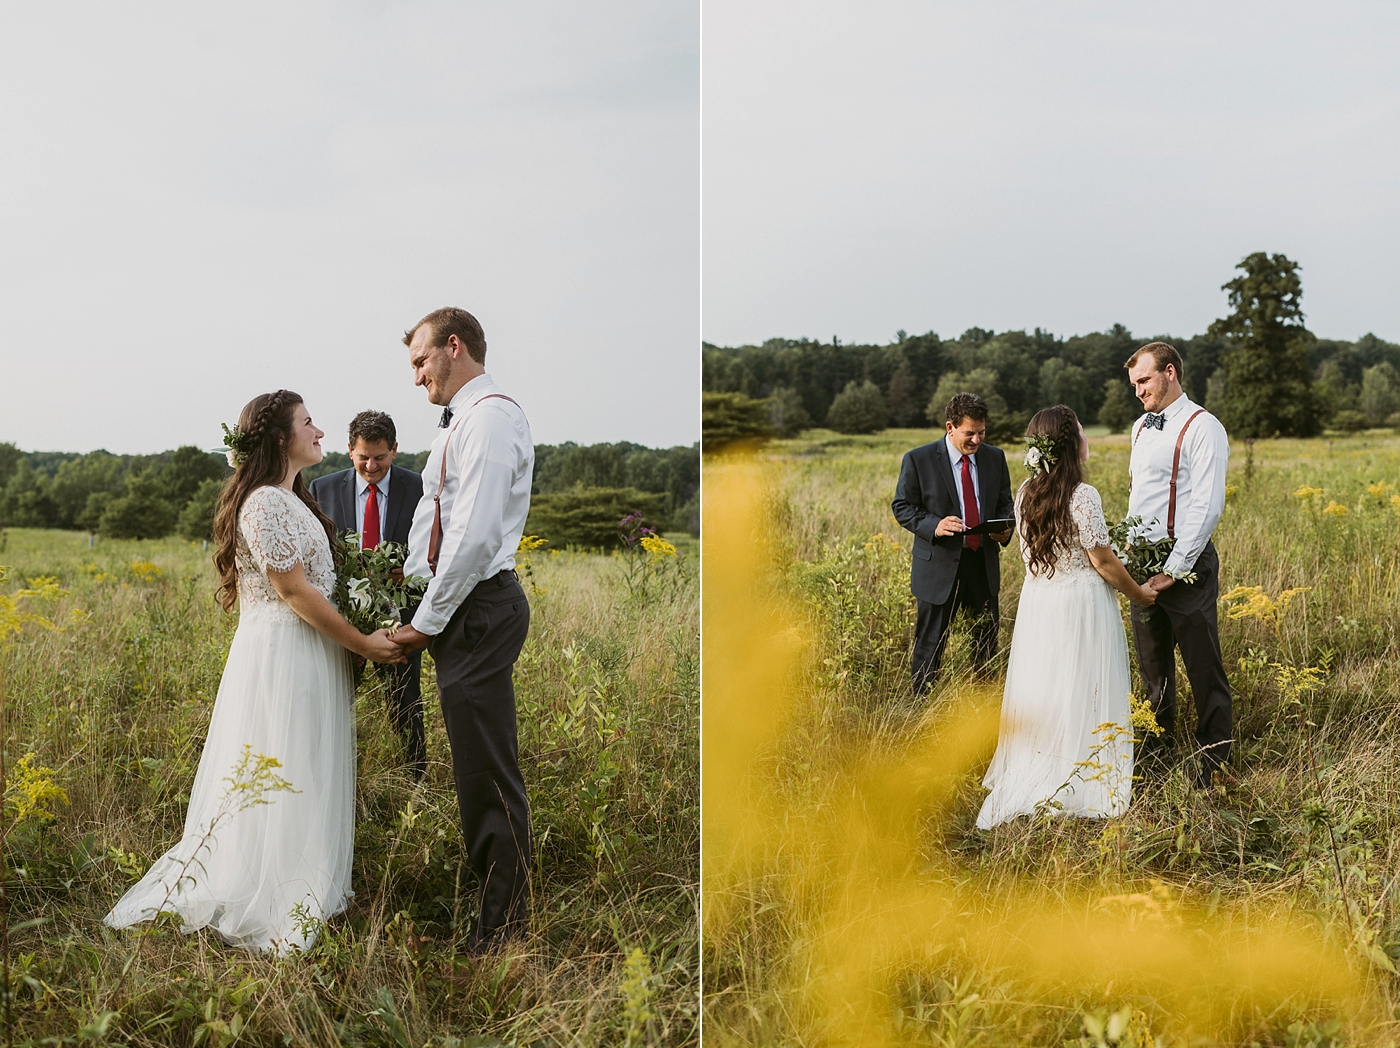 Meadow-Elopement-Ashley+Ben_MJPHOTO2018-86.jpg